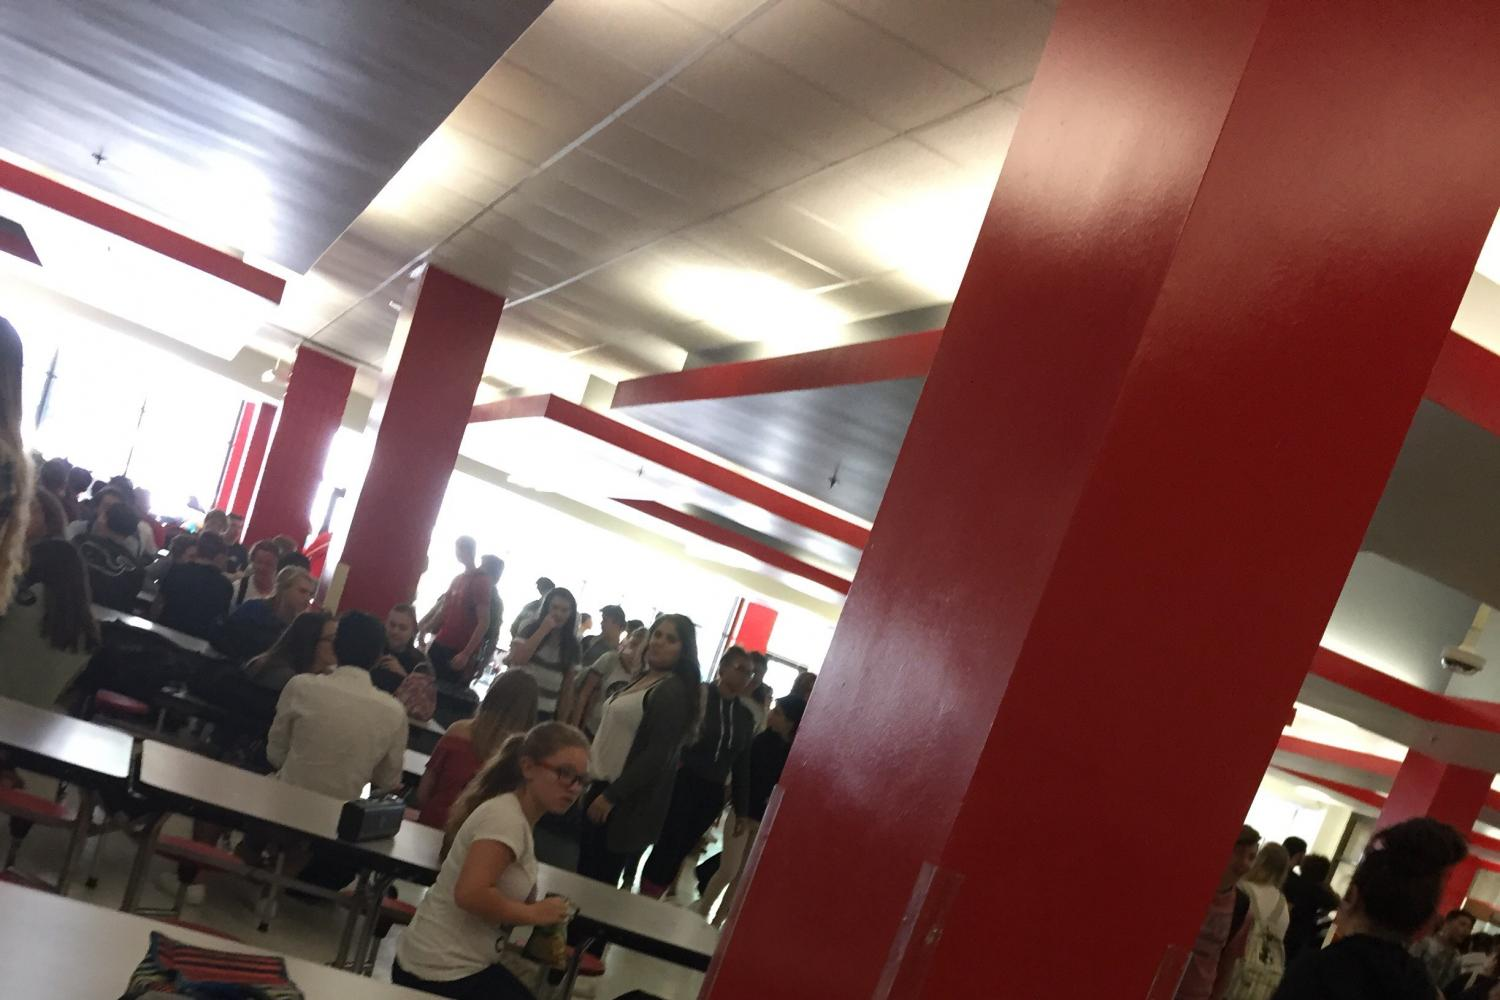 LMHS+Gets+Even+More+Crowded